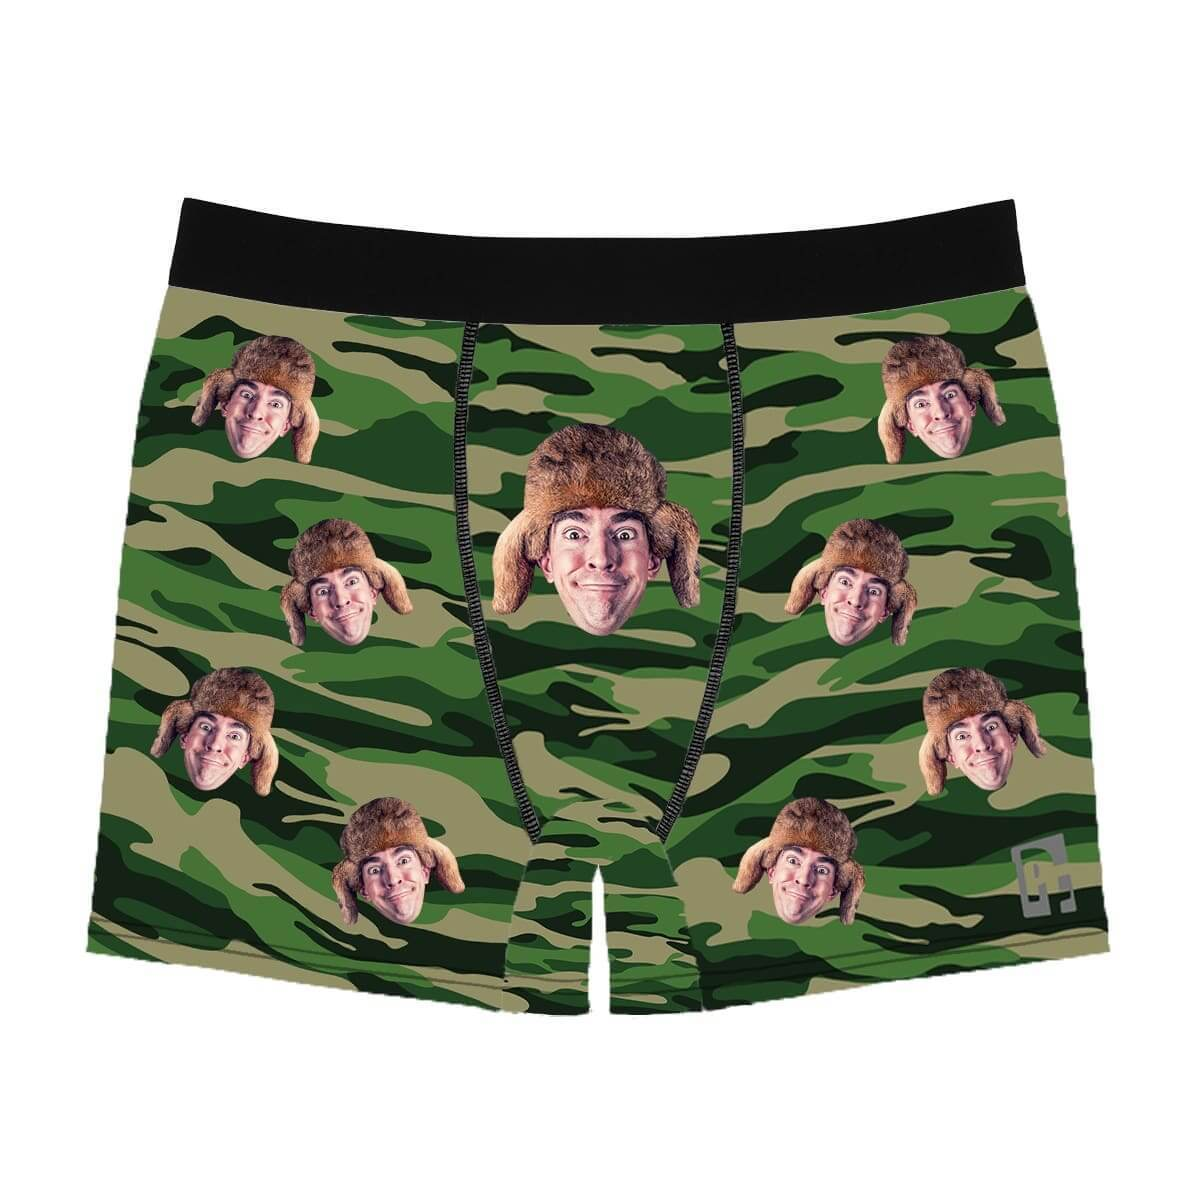 Military men's boxer briefs personalized with photo printed on them